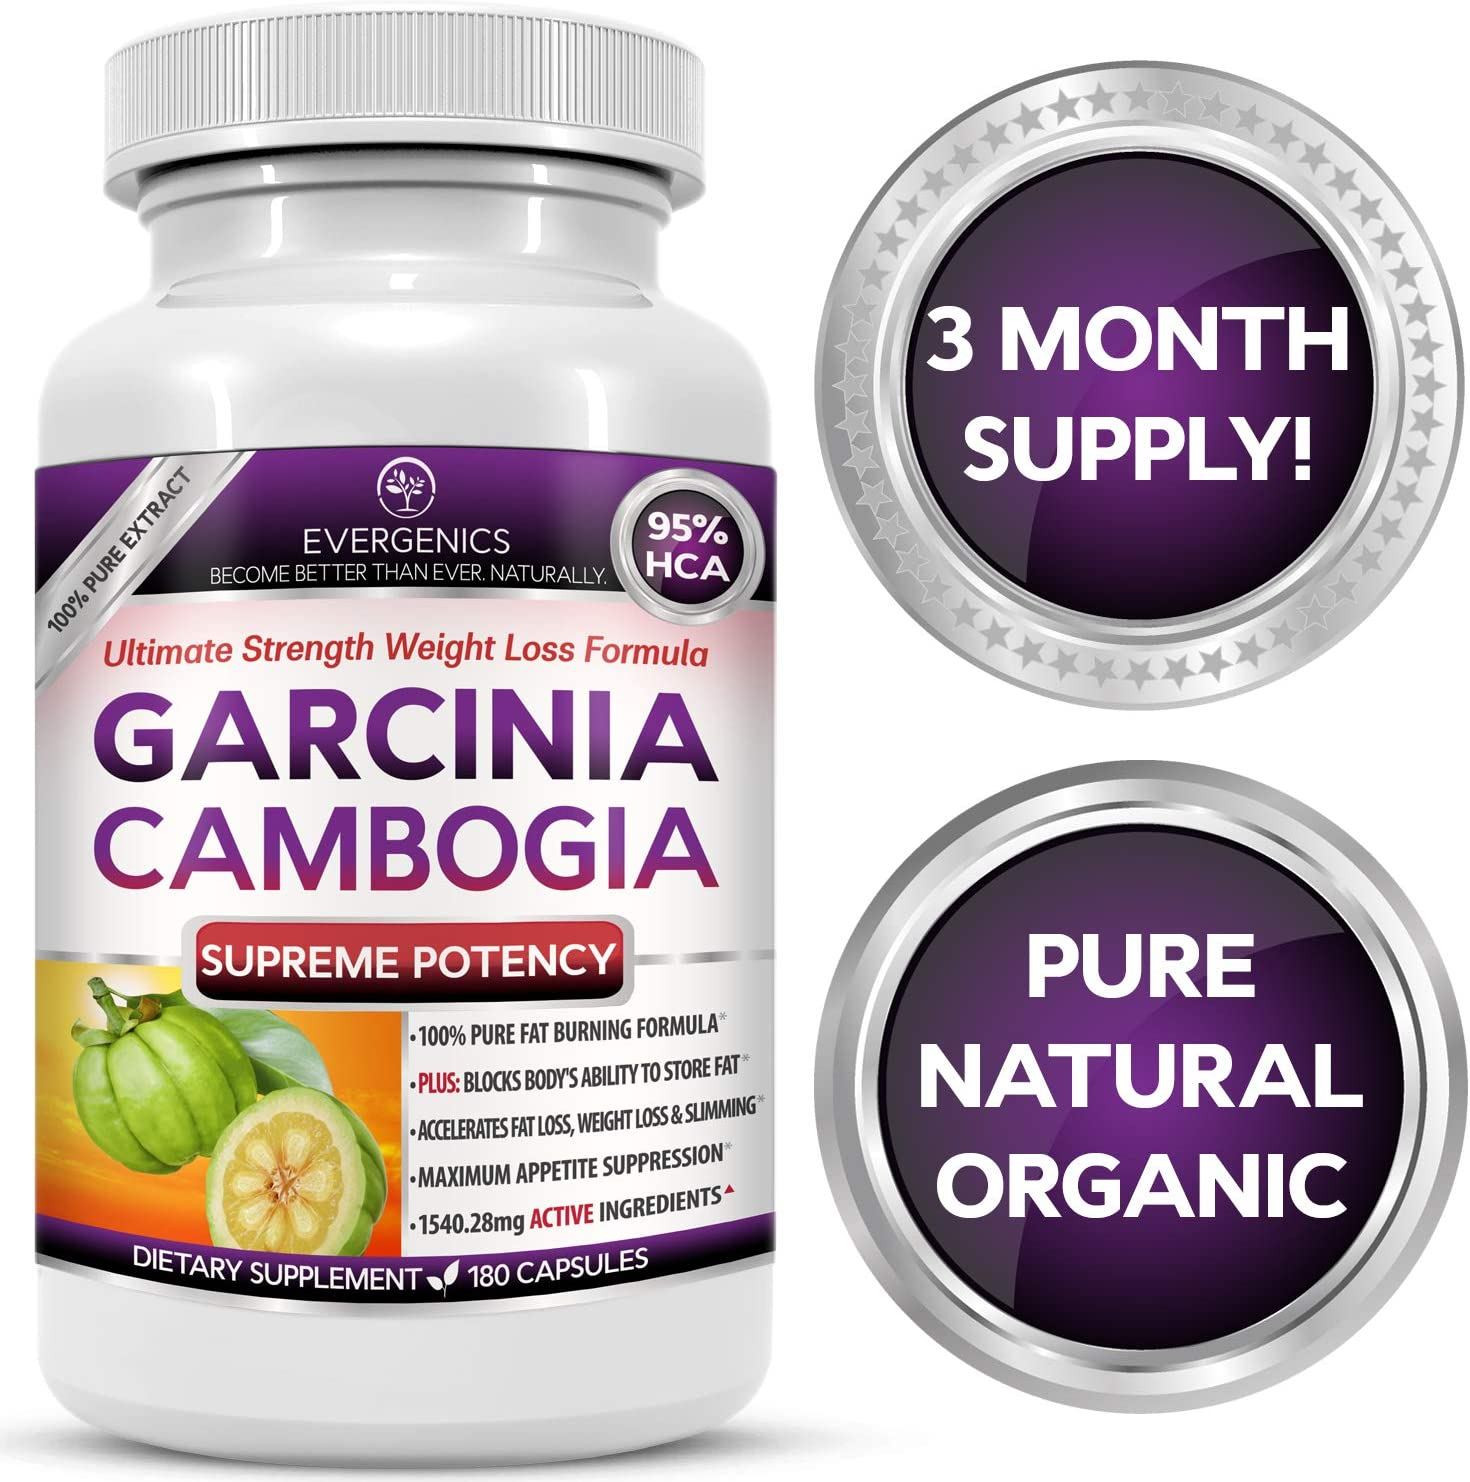 Evergenics Organic Garcinia Cambogia Extract. Fast, Natural Weight Loss for Adults. 3 Month Supply, 180 Caspsules. Ultimate Strength 95 HCA Burns Fat, Boosts Metabolism and Controls Appetite.